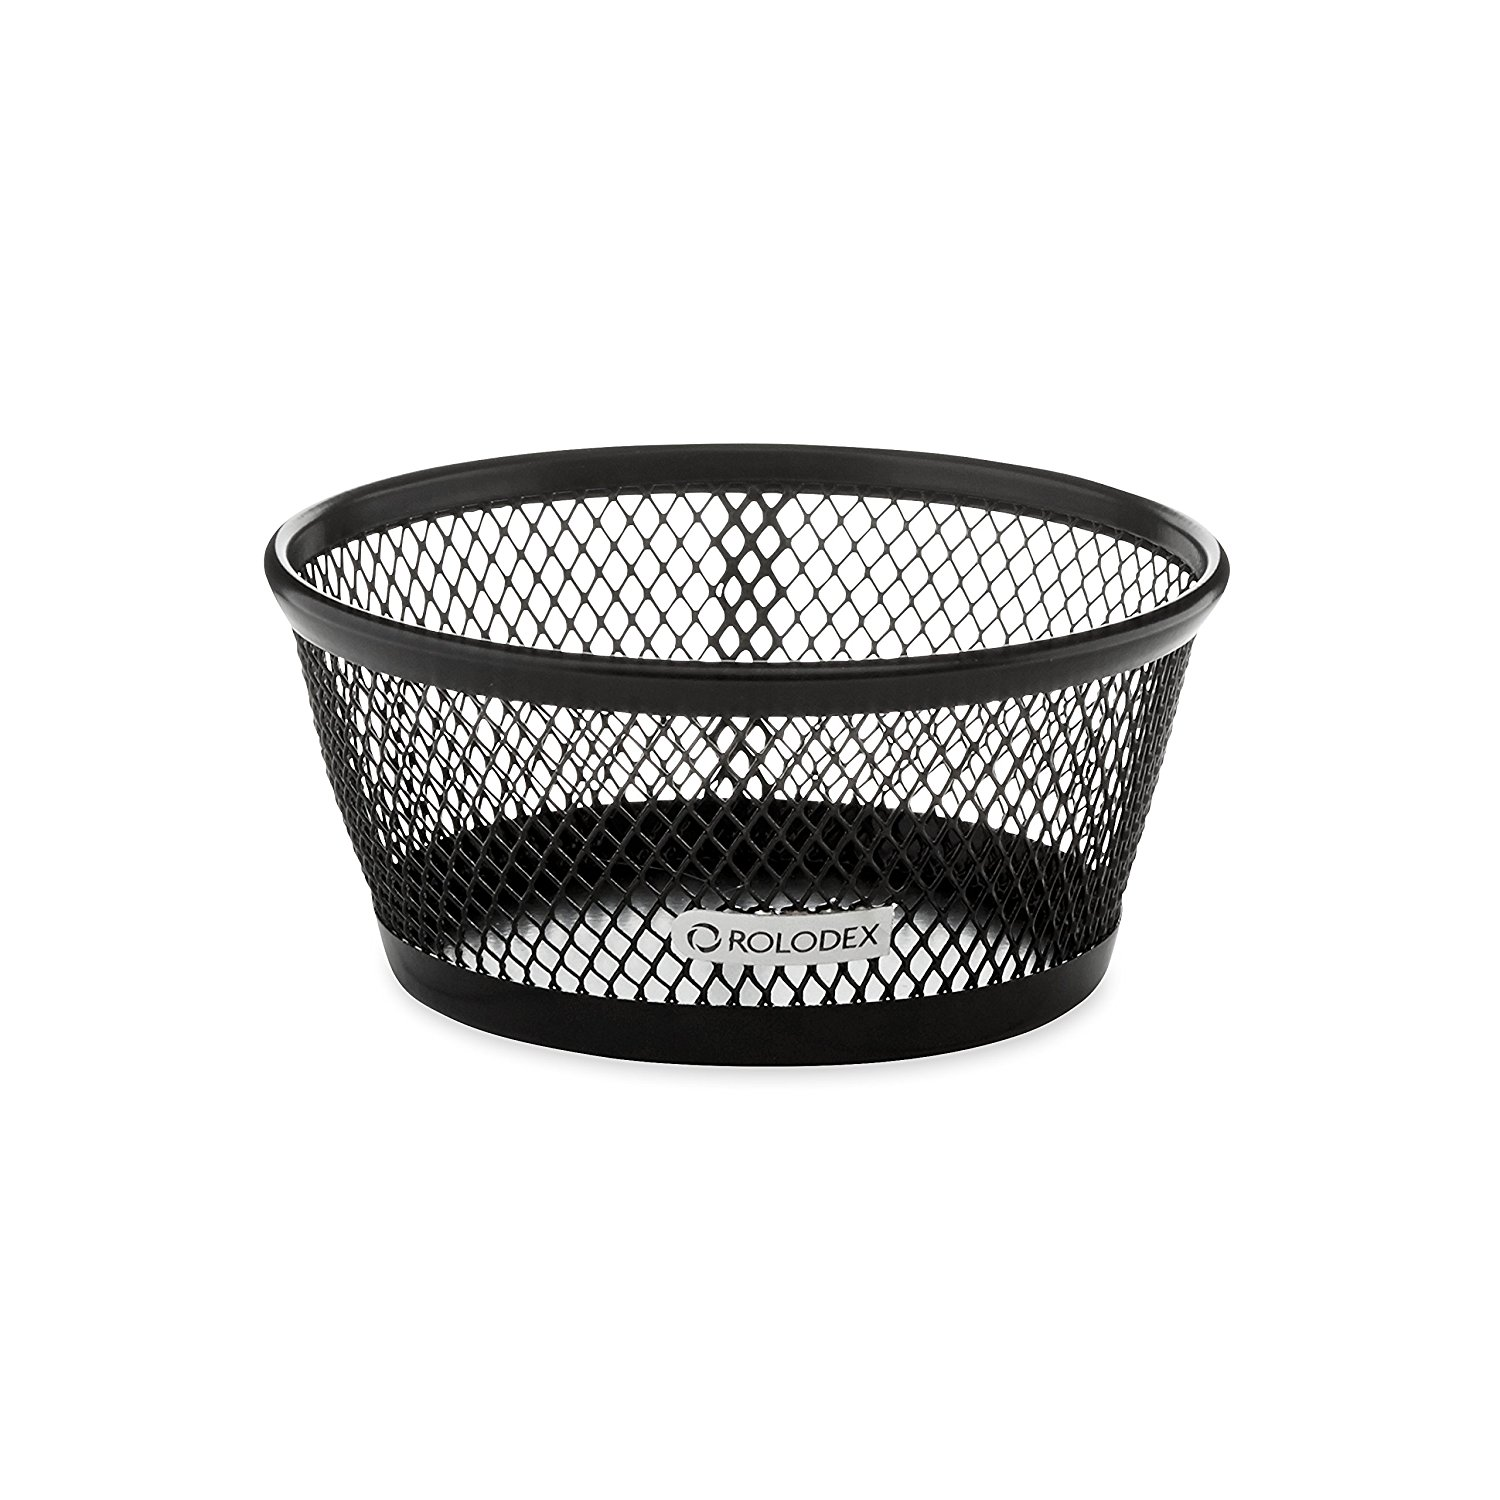 Mesh Collection Jumbo Paper Clip Holder, Black (62562), Round holder has 50% greater capacity than standard clip dishes. By Rolodex